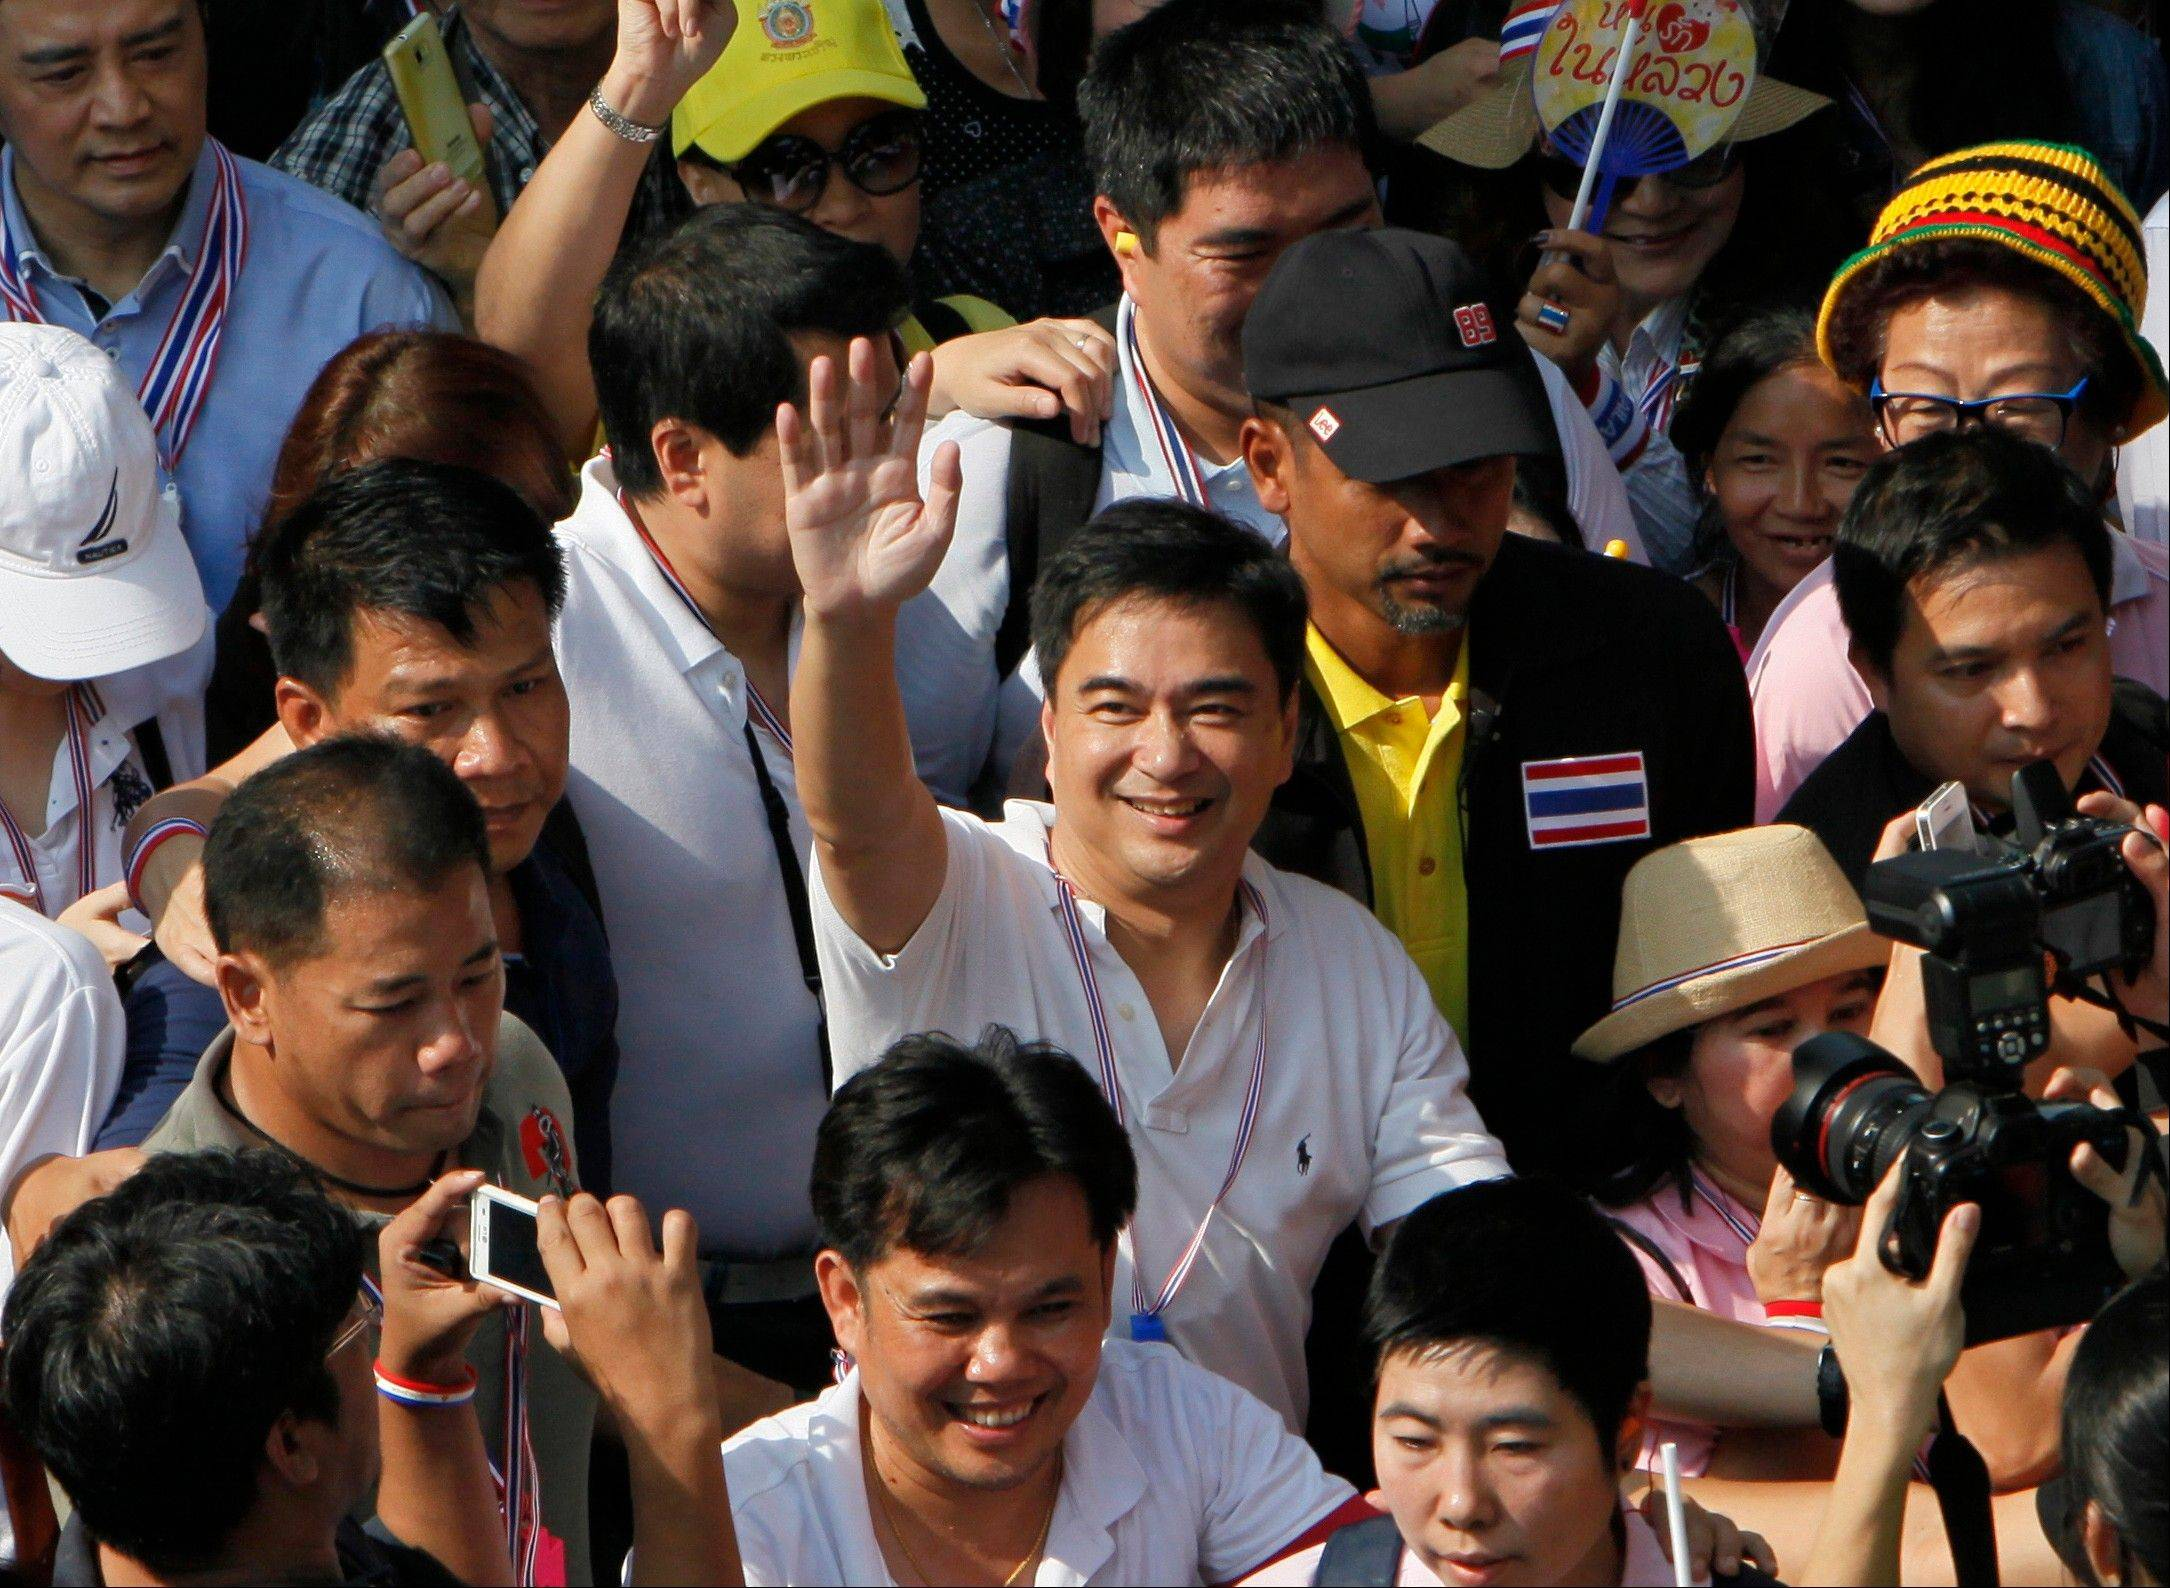 Associated PressDemocrat leader and former Prime Minister Abhisit Vejjajiva, center, in this photo from Dec. 9, 2013, waves as he marches with anti-government protesters in Bangkok. The party's leader Abhisit Vejjajiva announced the boycott after a meeting Saturday, Dec. 21, of party executives. He said the decision was made to try to ensure political reforms are implemented.